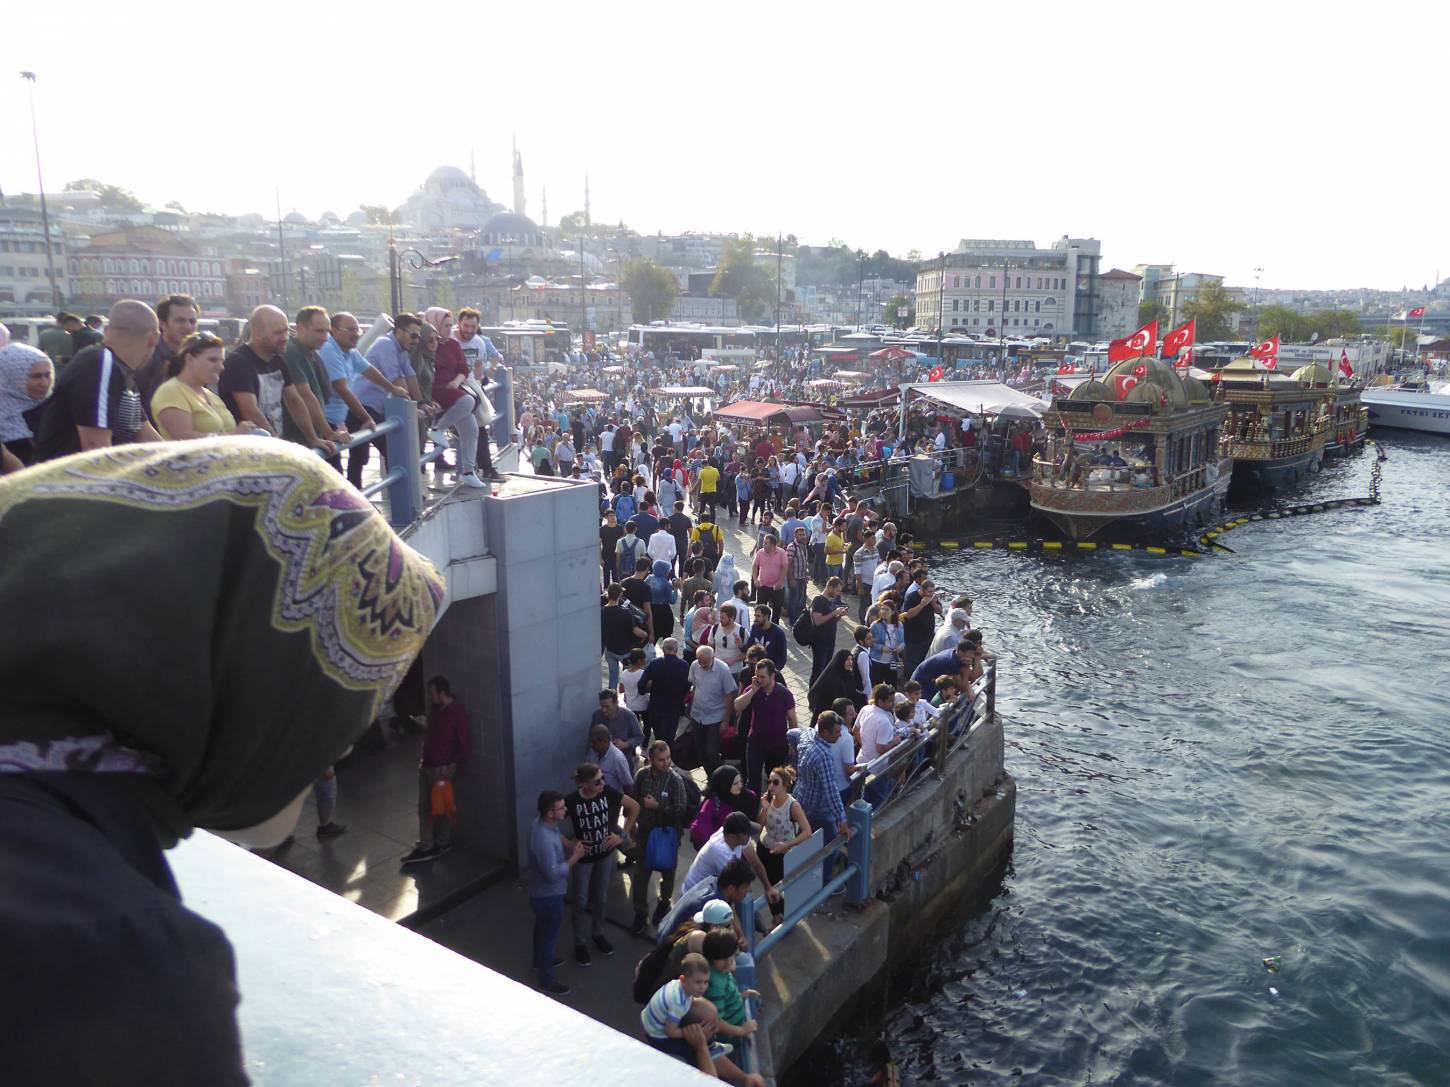 Istanbul - 4:00pm&nbsp;24<sup>th</sup>&nbsp;Sep.&nbsp;'17  <a href='http://maps.google.com/?t=h&q=41.018258,28.971747&z=18&output=embed' target=_blank><img src='http://www.brockwell-bake.org.uk/img/marker.png' style='border:none;vertical-align:top' height=16px></a>